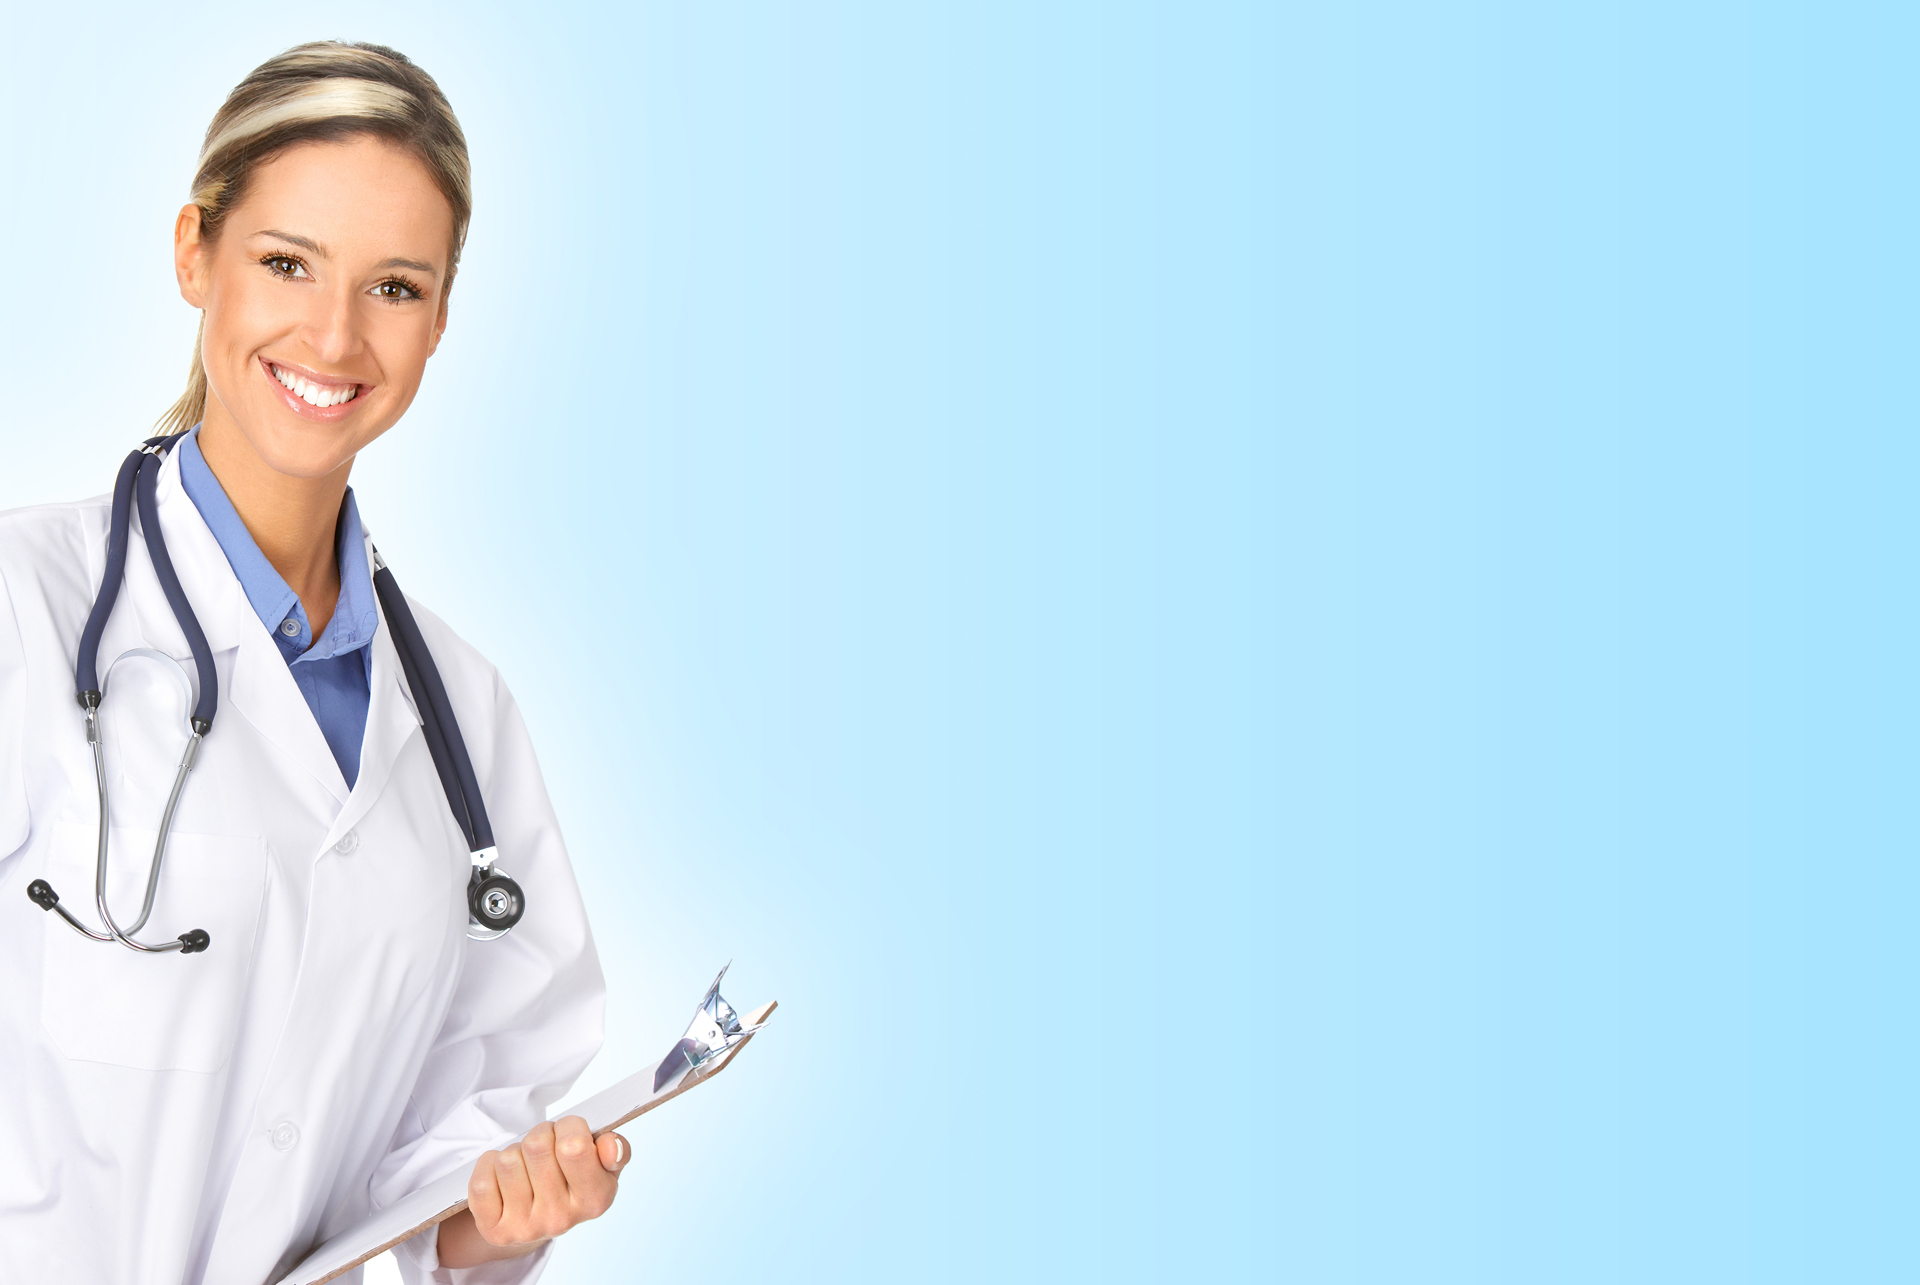 Medical Doctor Woman PPT Backgrounds